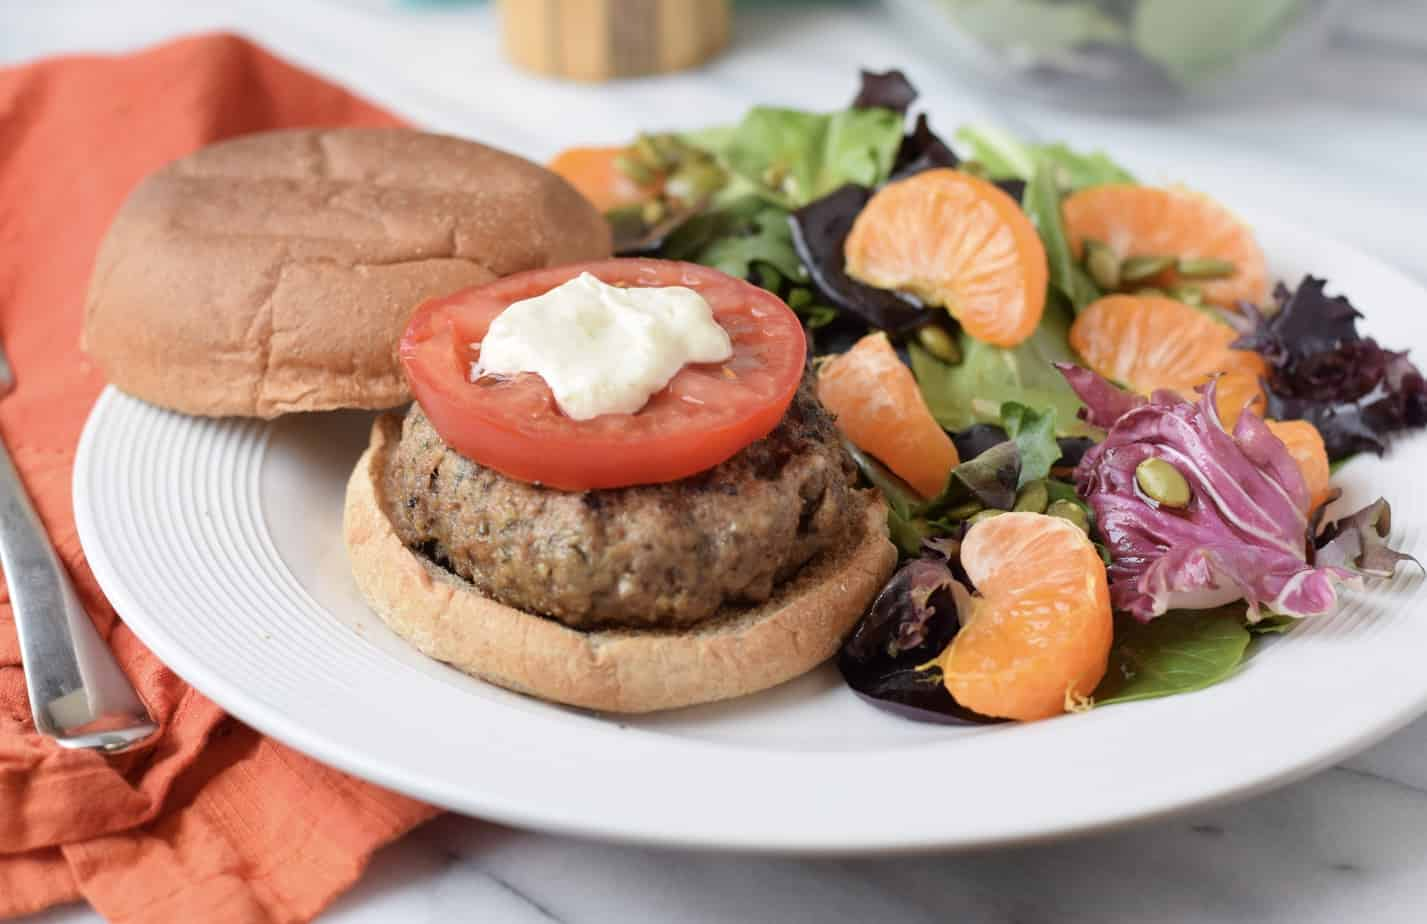 beef and mushroom burger on bun image by Elizabeth Ward, MS, RD